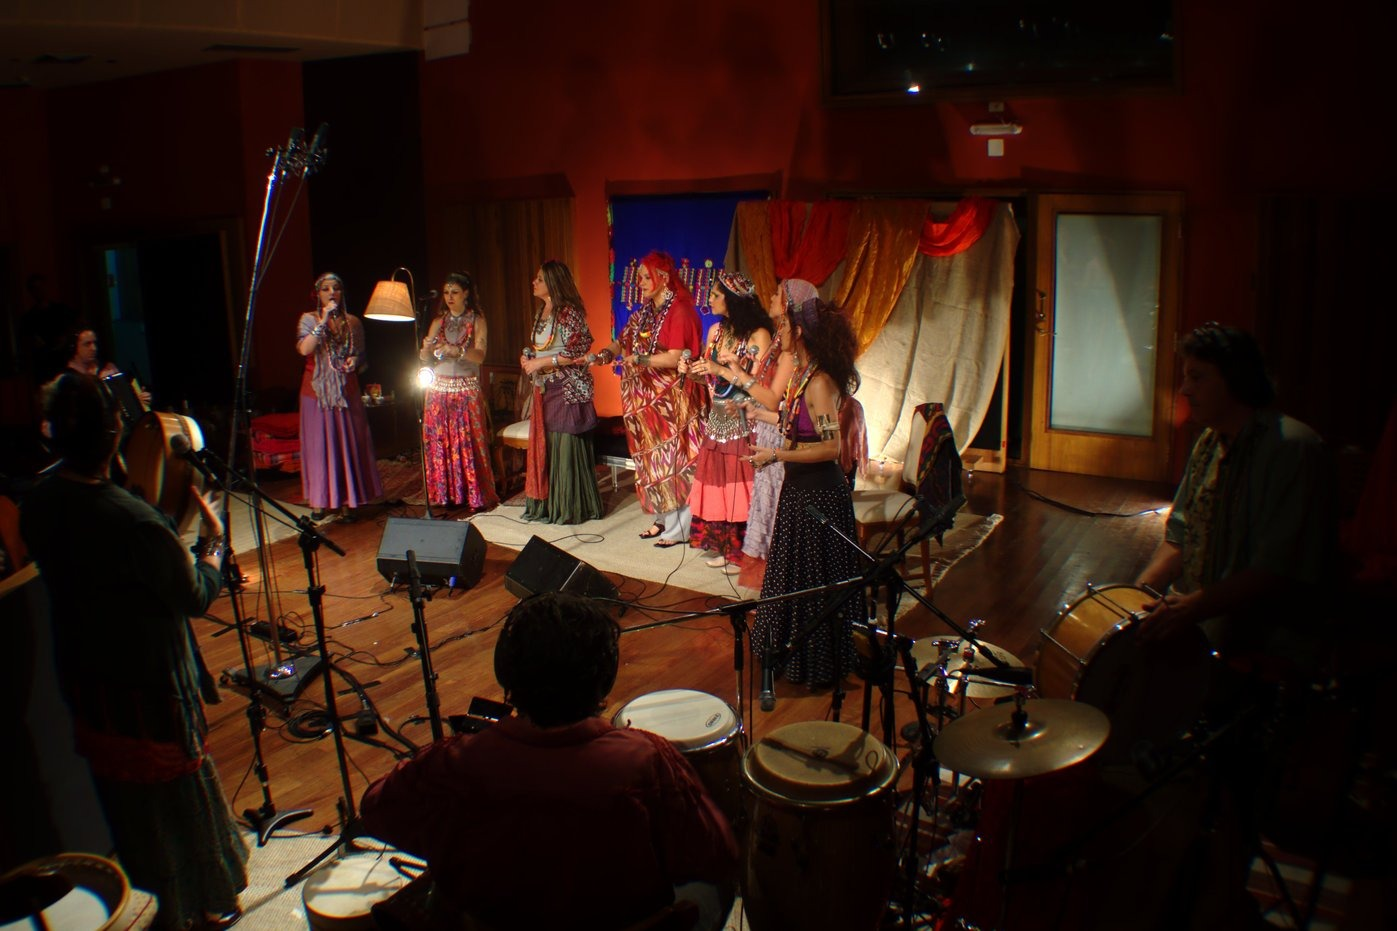 Mawaca singers and musicians during recording of DVD 'Inquilinos do Mundo', in August 2012